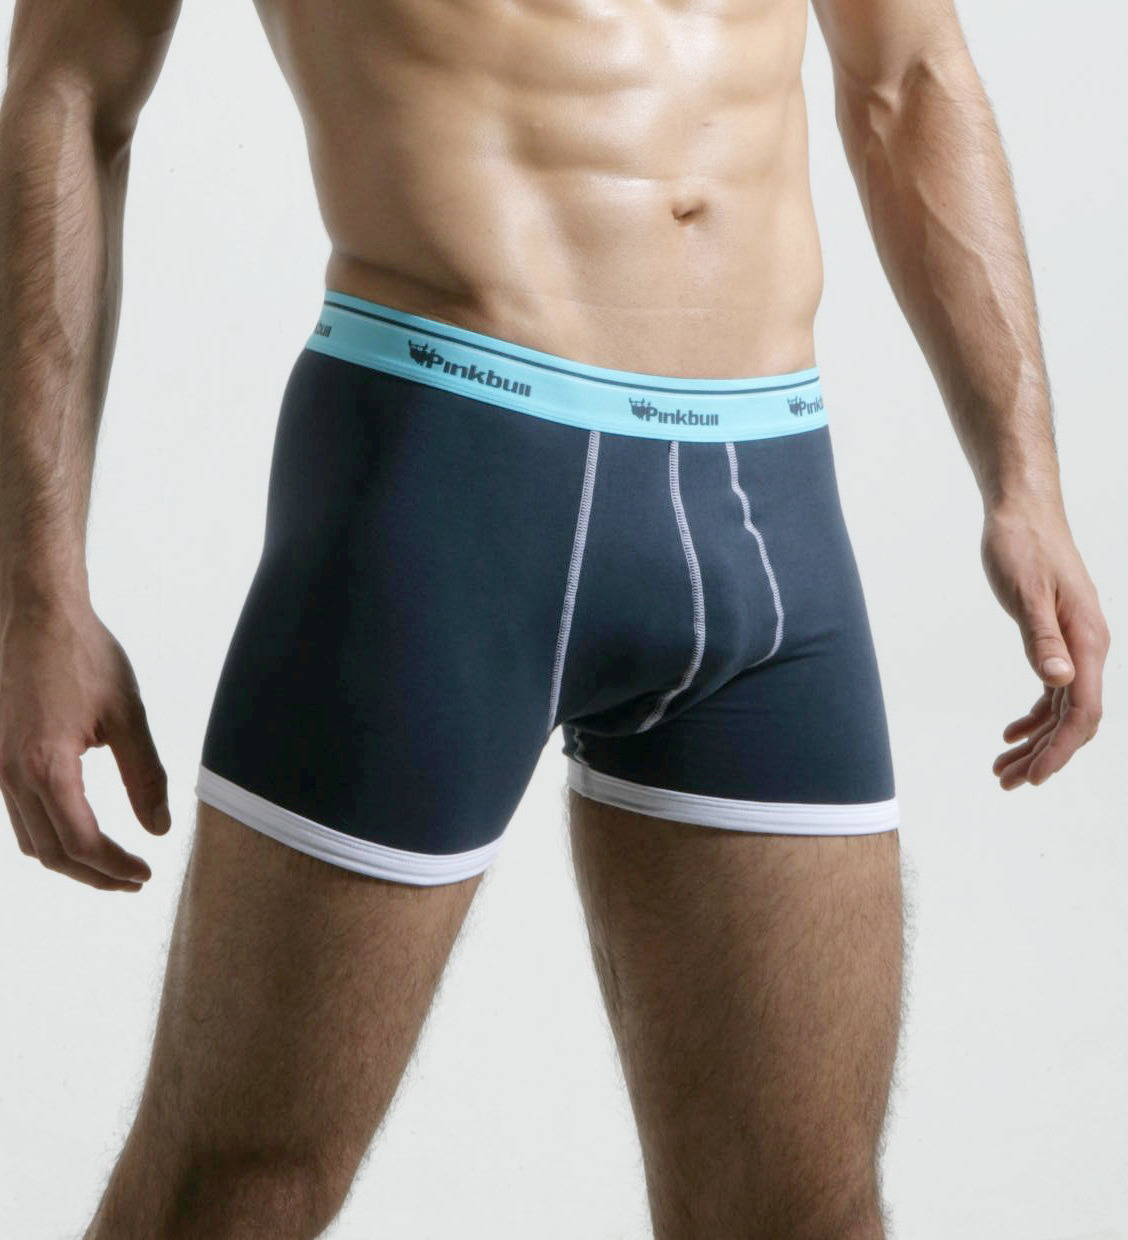 ... Men's Boxer Underpants - China Boxer Short Men's Underwear Men's Boxer